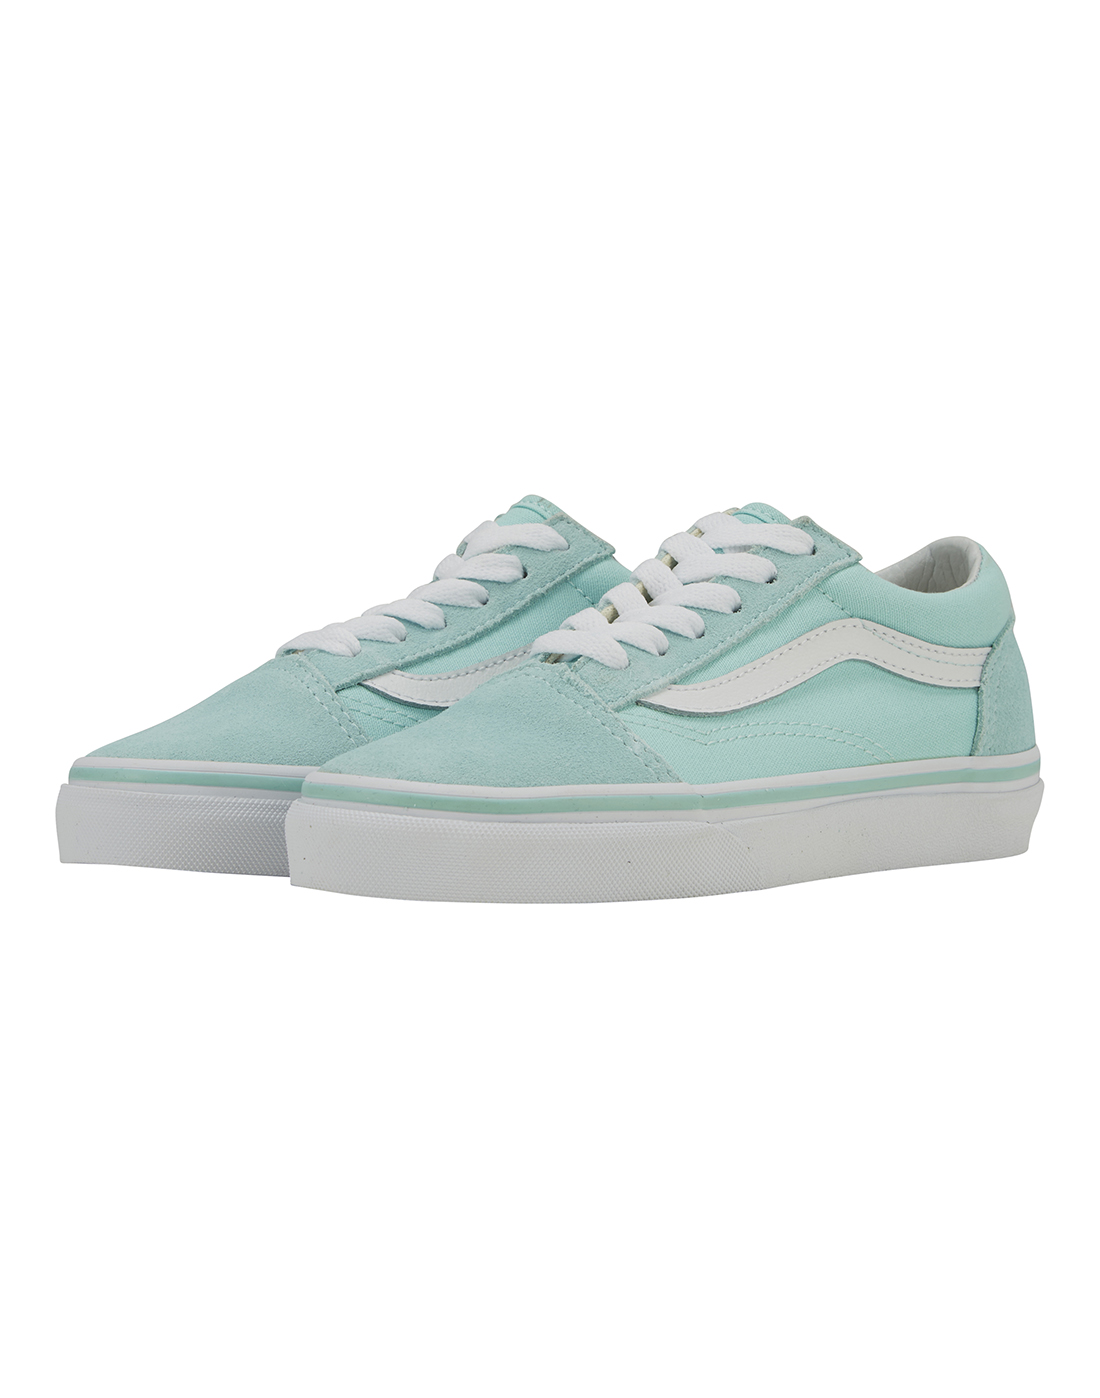 a3e6e3f66def76 Younger Girls Old Skool · Younger Girls Old Skool ...